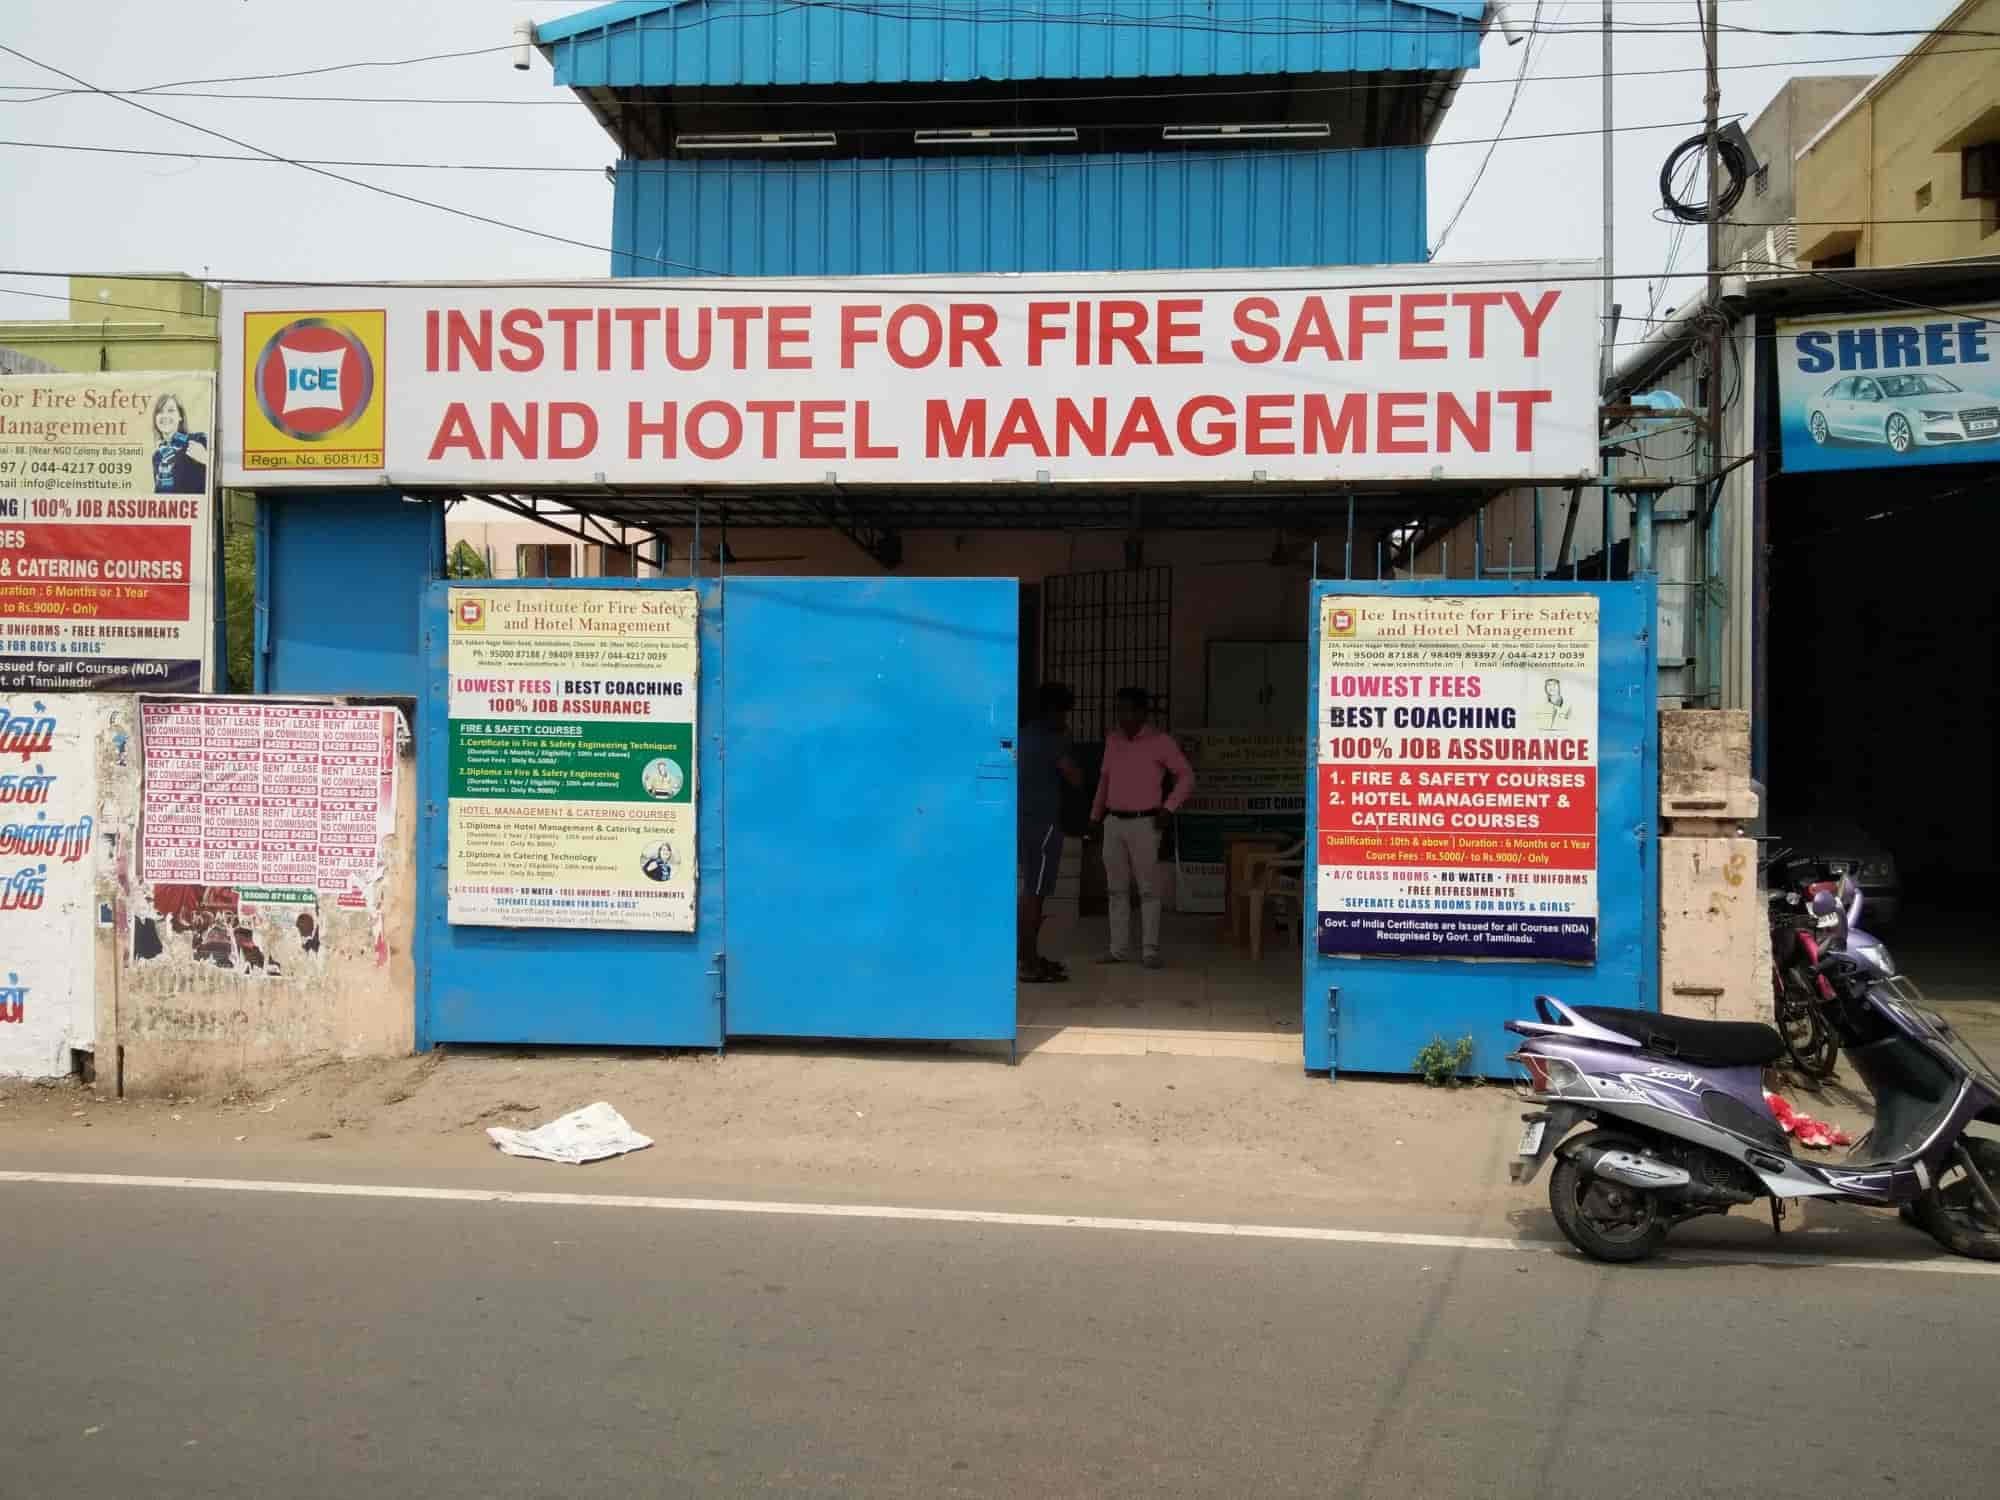 Ice Institute For Fire Safety And Hotel Management Adambakkam Ice